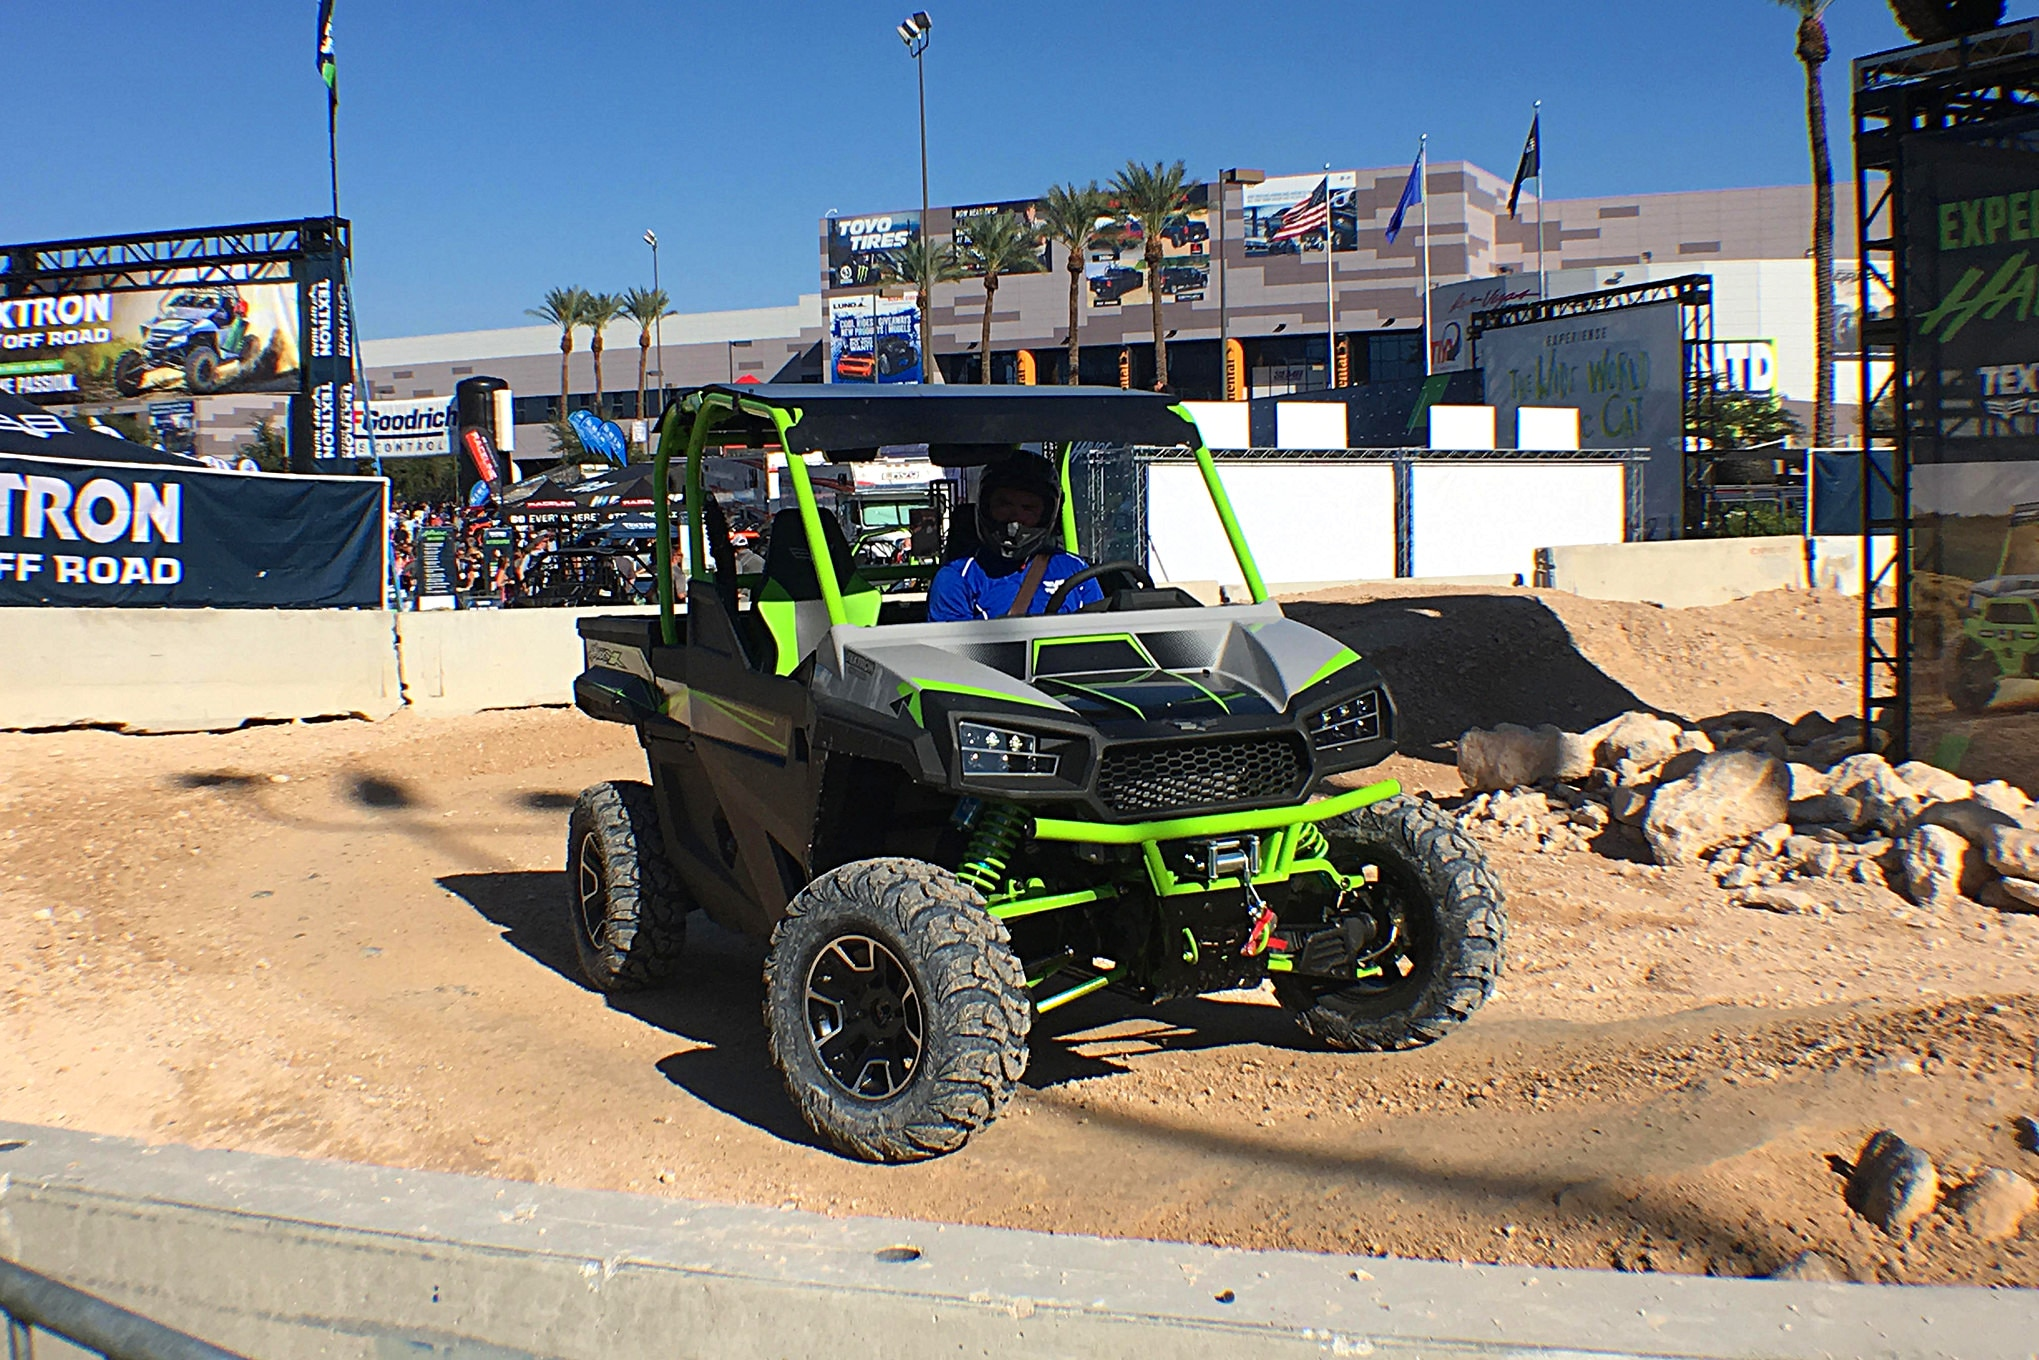 Textron had a small course in one corner where their drivers took enthusiasts for a fun-filled spin.